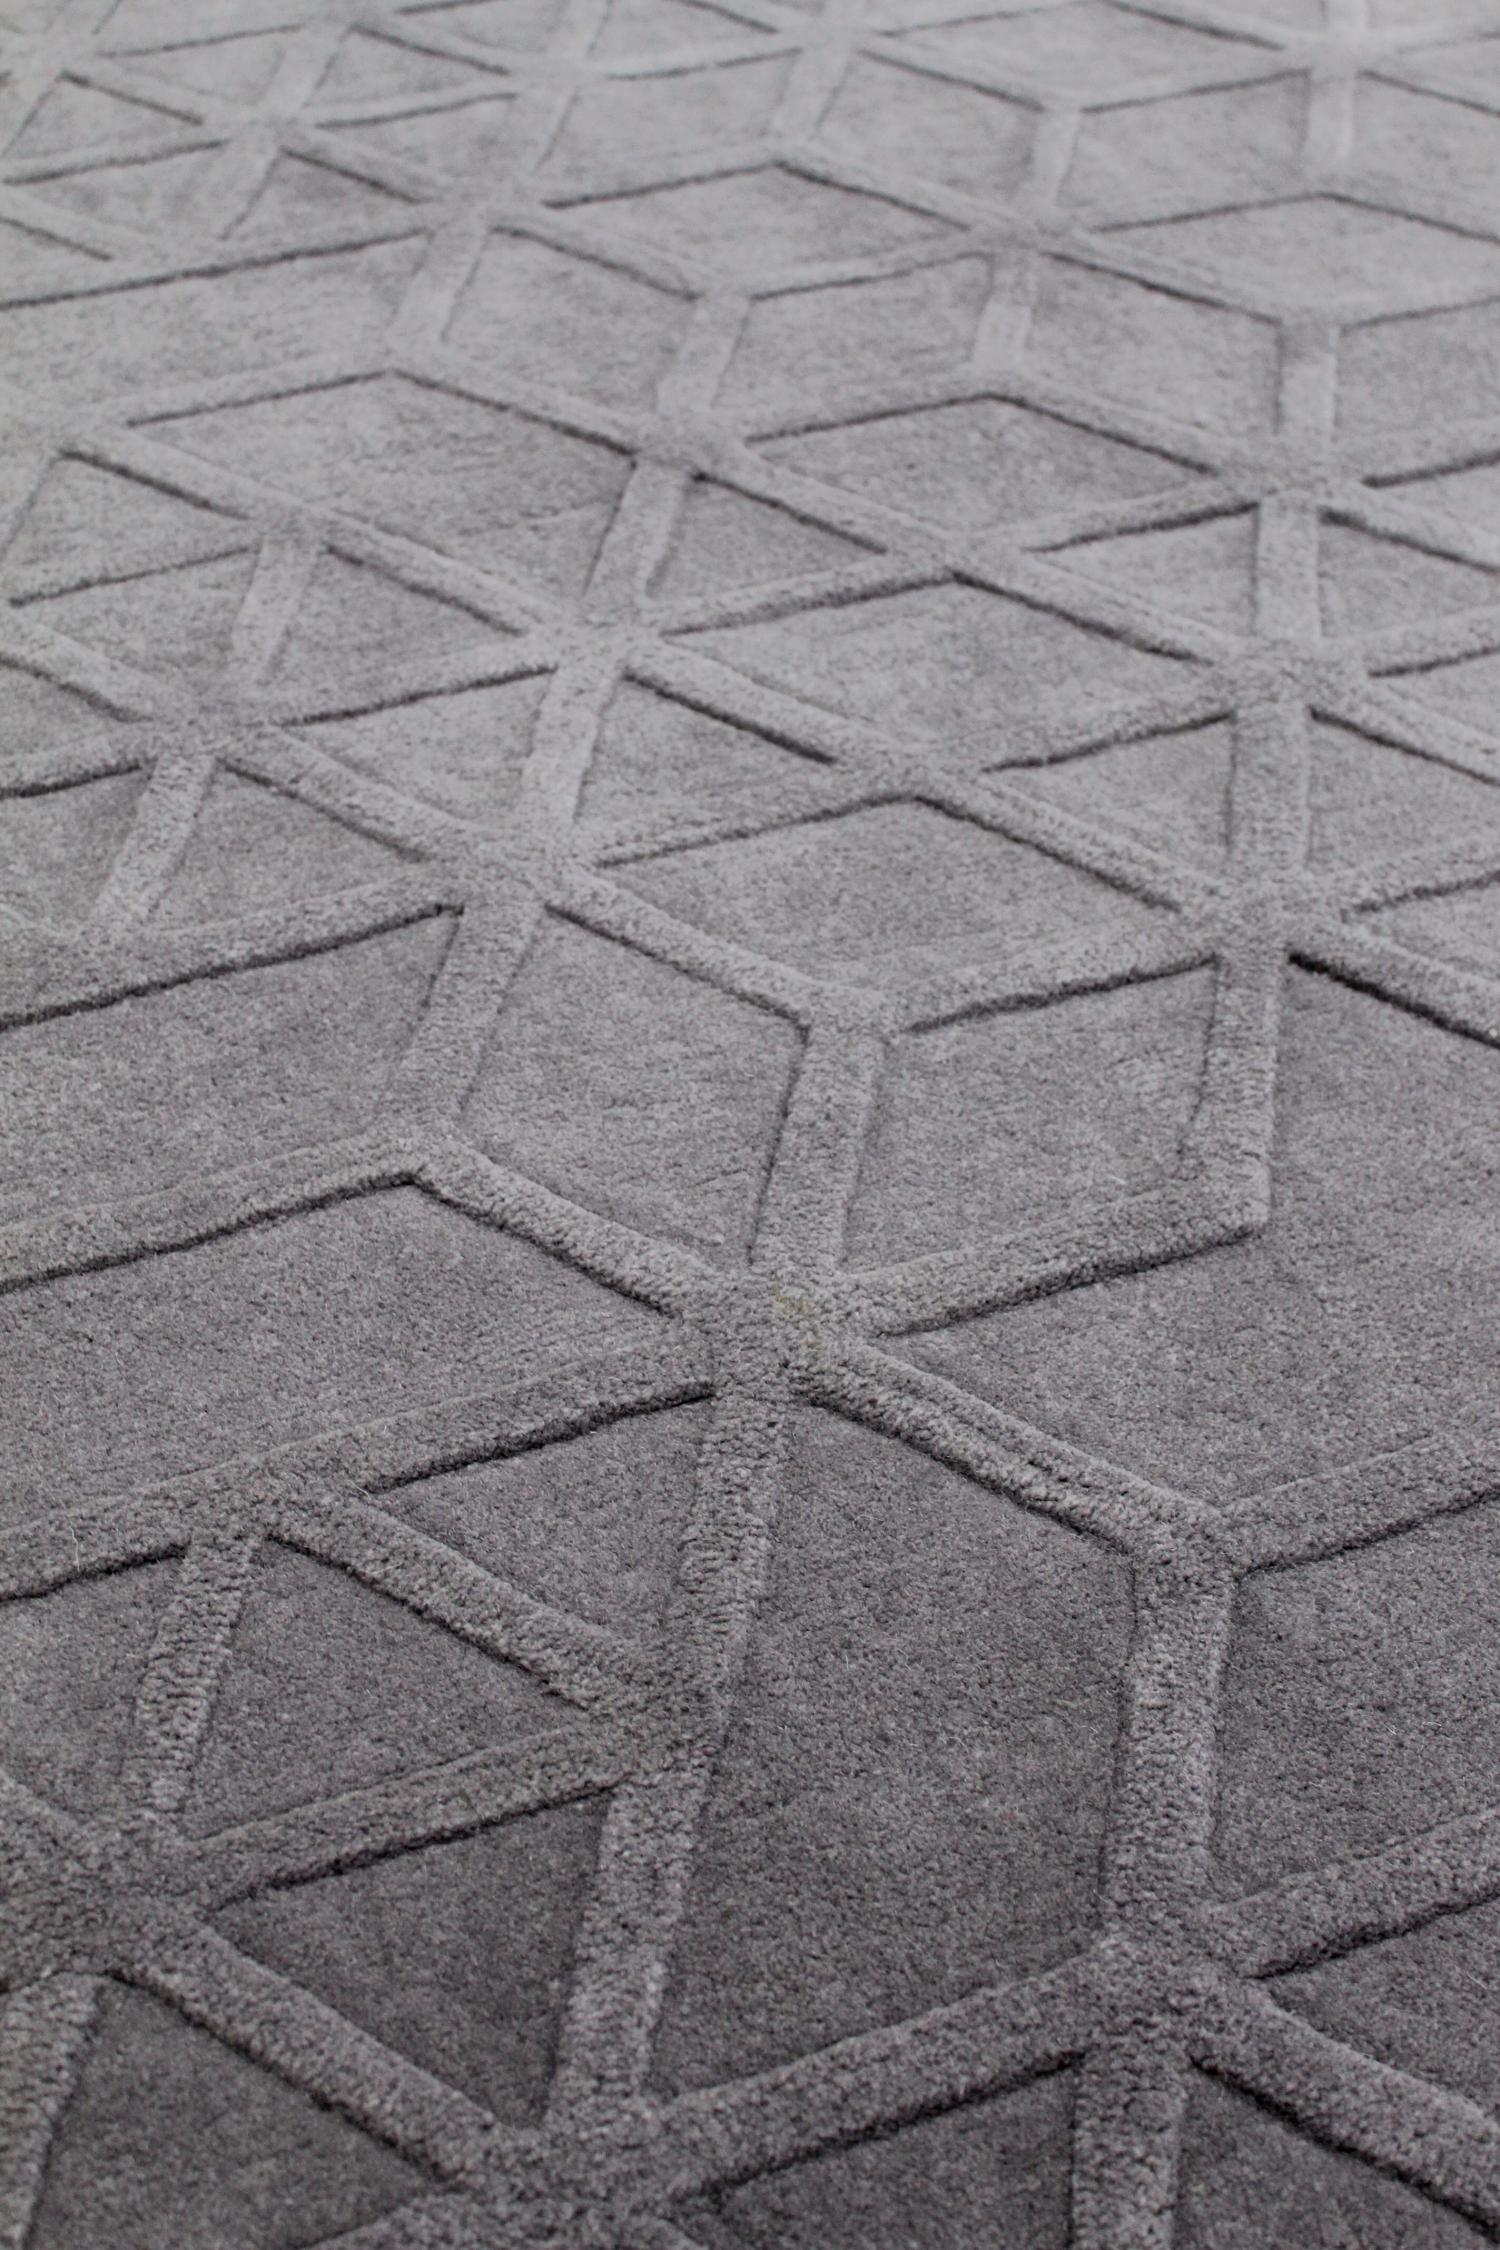 lima-hand-tuffed-nz-wool-blend-textured-rugs-perth-stans-Grey-raised